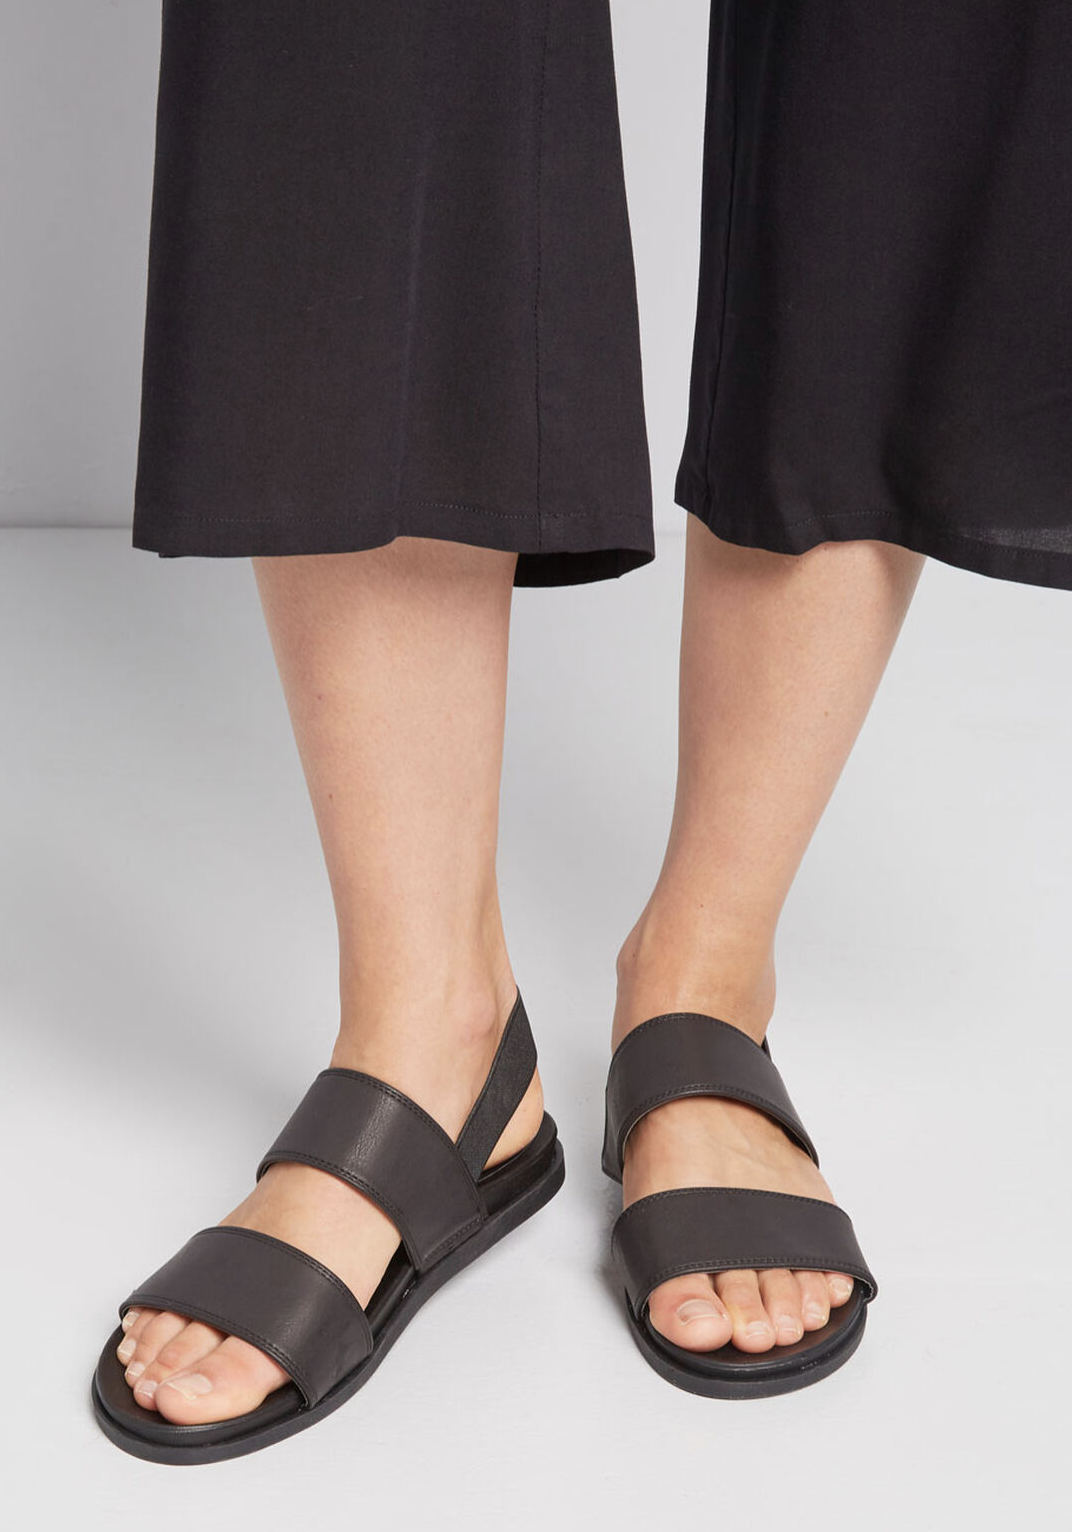 Sandals! A comfortable option for exploring a new city, but also easy to take off when you're hitting the beach! We love our Simple Things Sandal. -